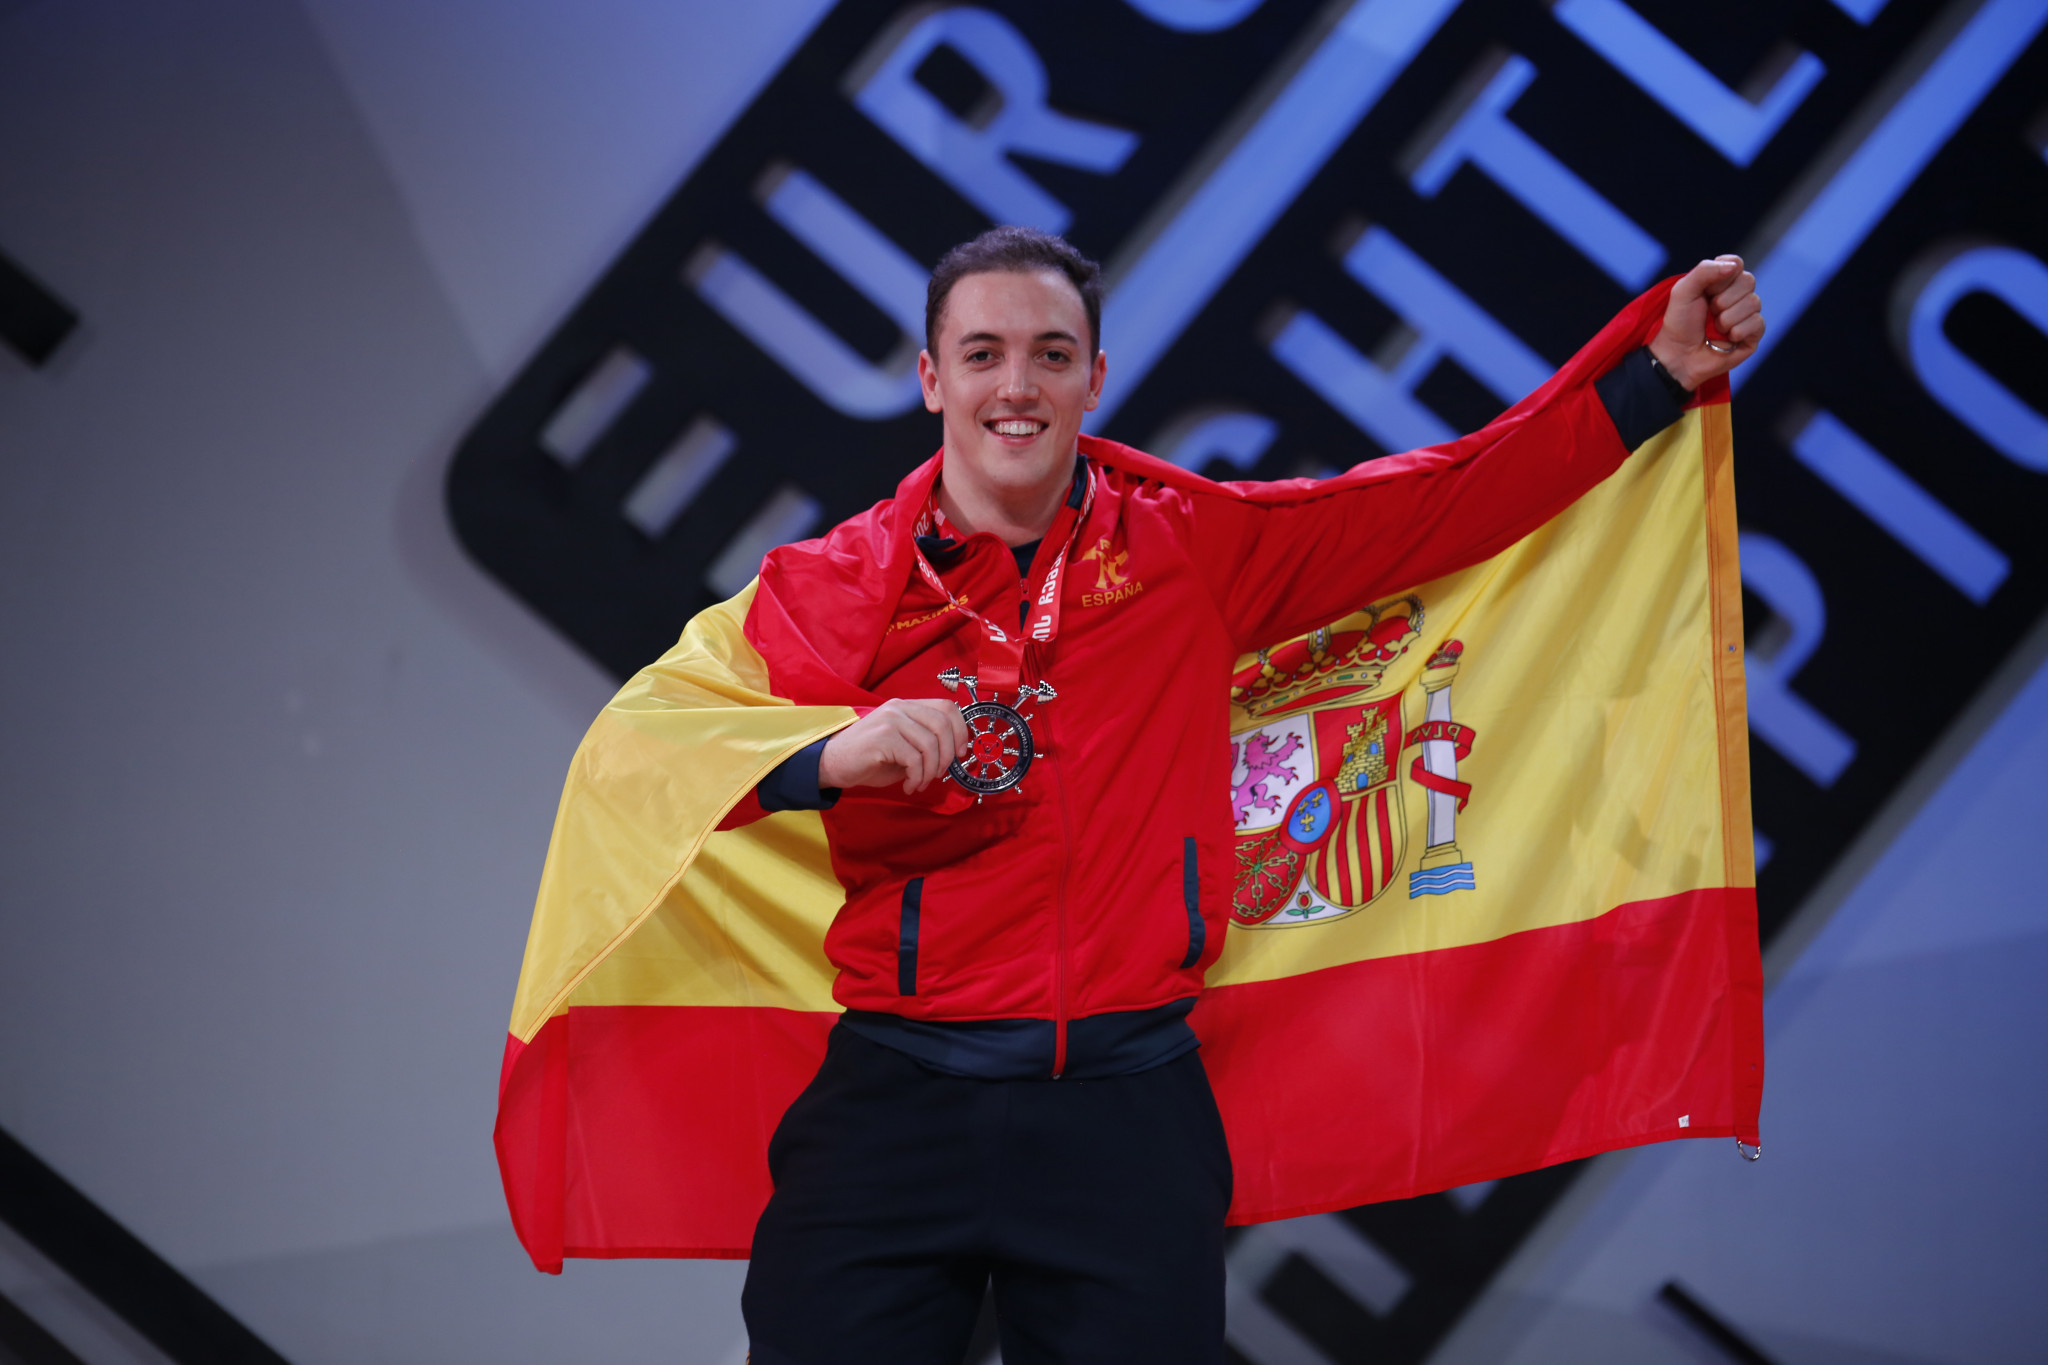 Spain's Andres Mata won a silver medal in the men's 81kg snatch, despite being in Group B ©FEH